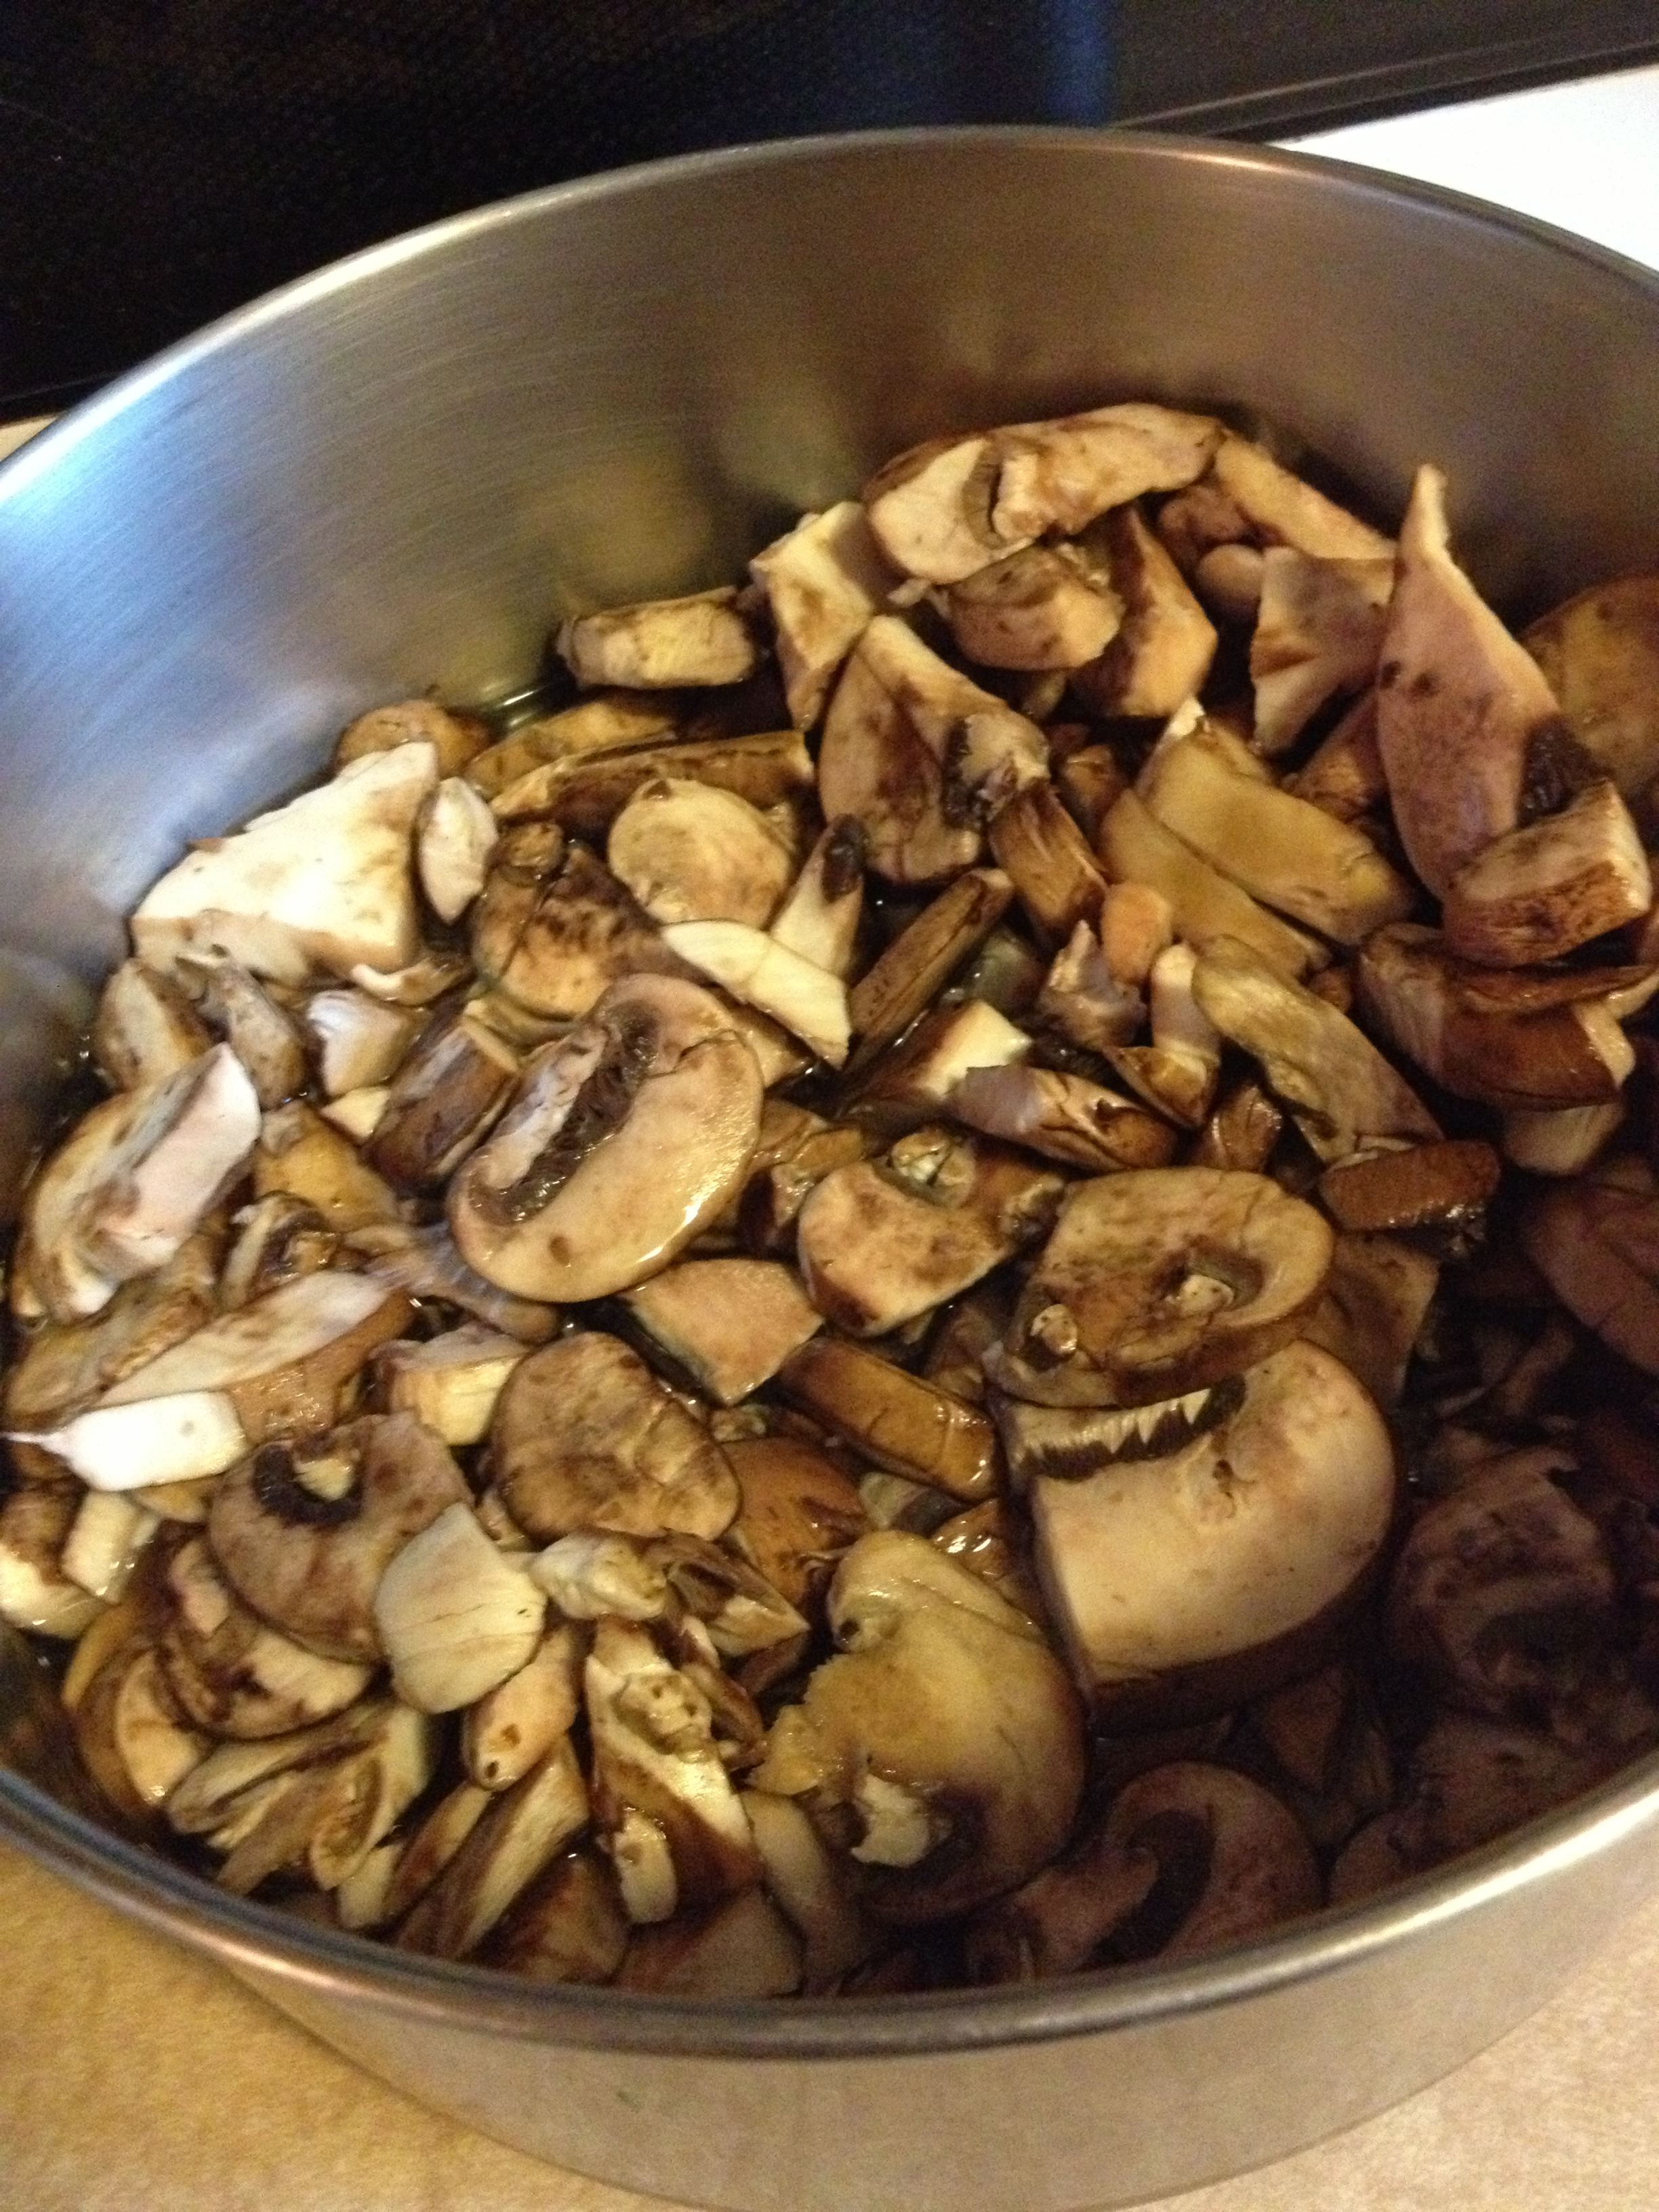 Steeping mushrooms